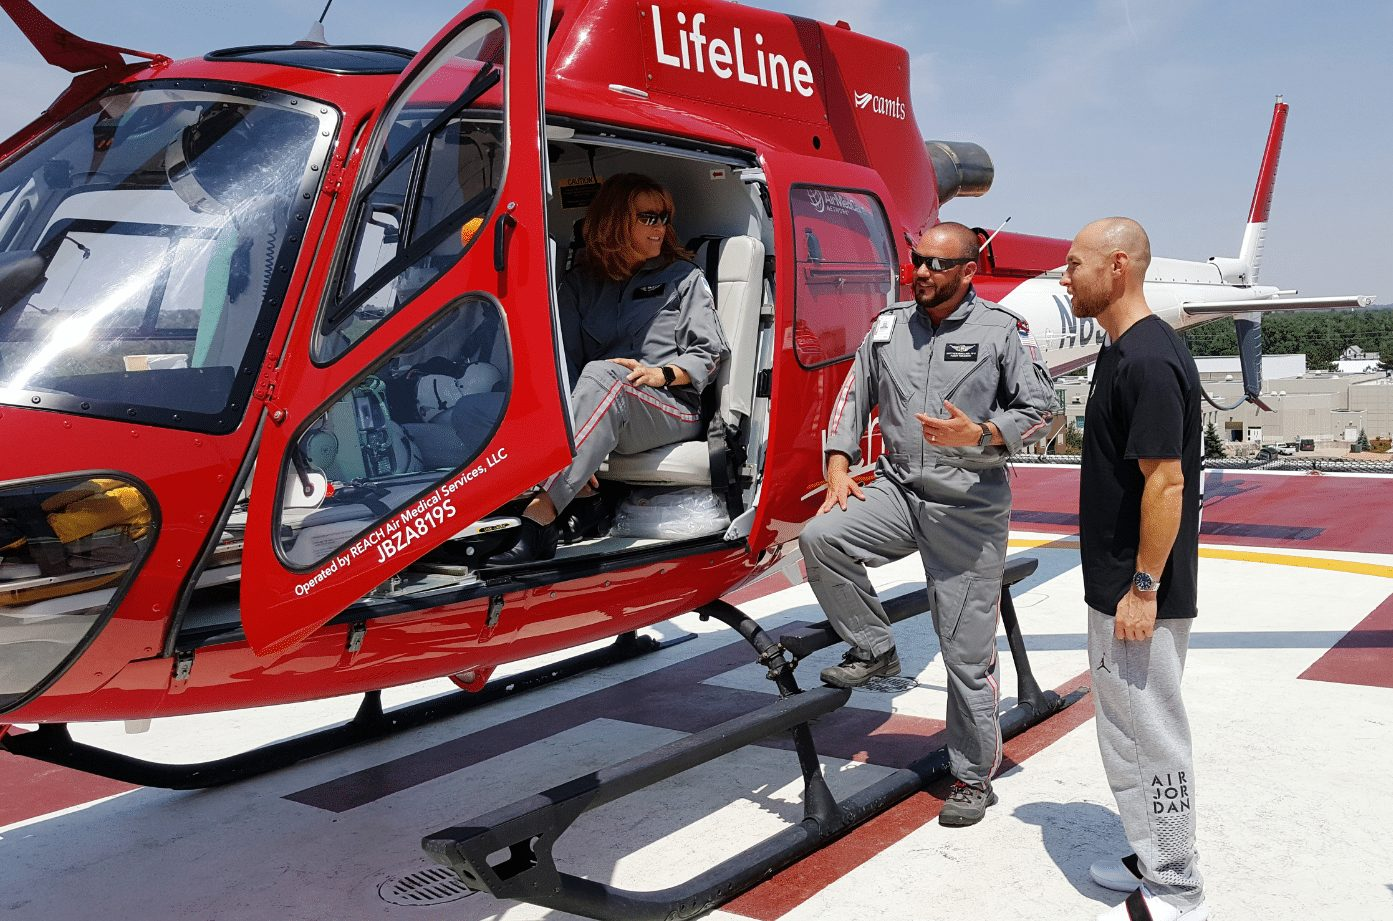 UCHealth's Lifeline helicopter is shown with Flight Nurse Ami Bess in the cockpit. She and Matt Bergland, a flight paramedic, talk to patient Eddie Kerr.